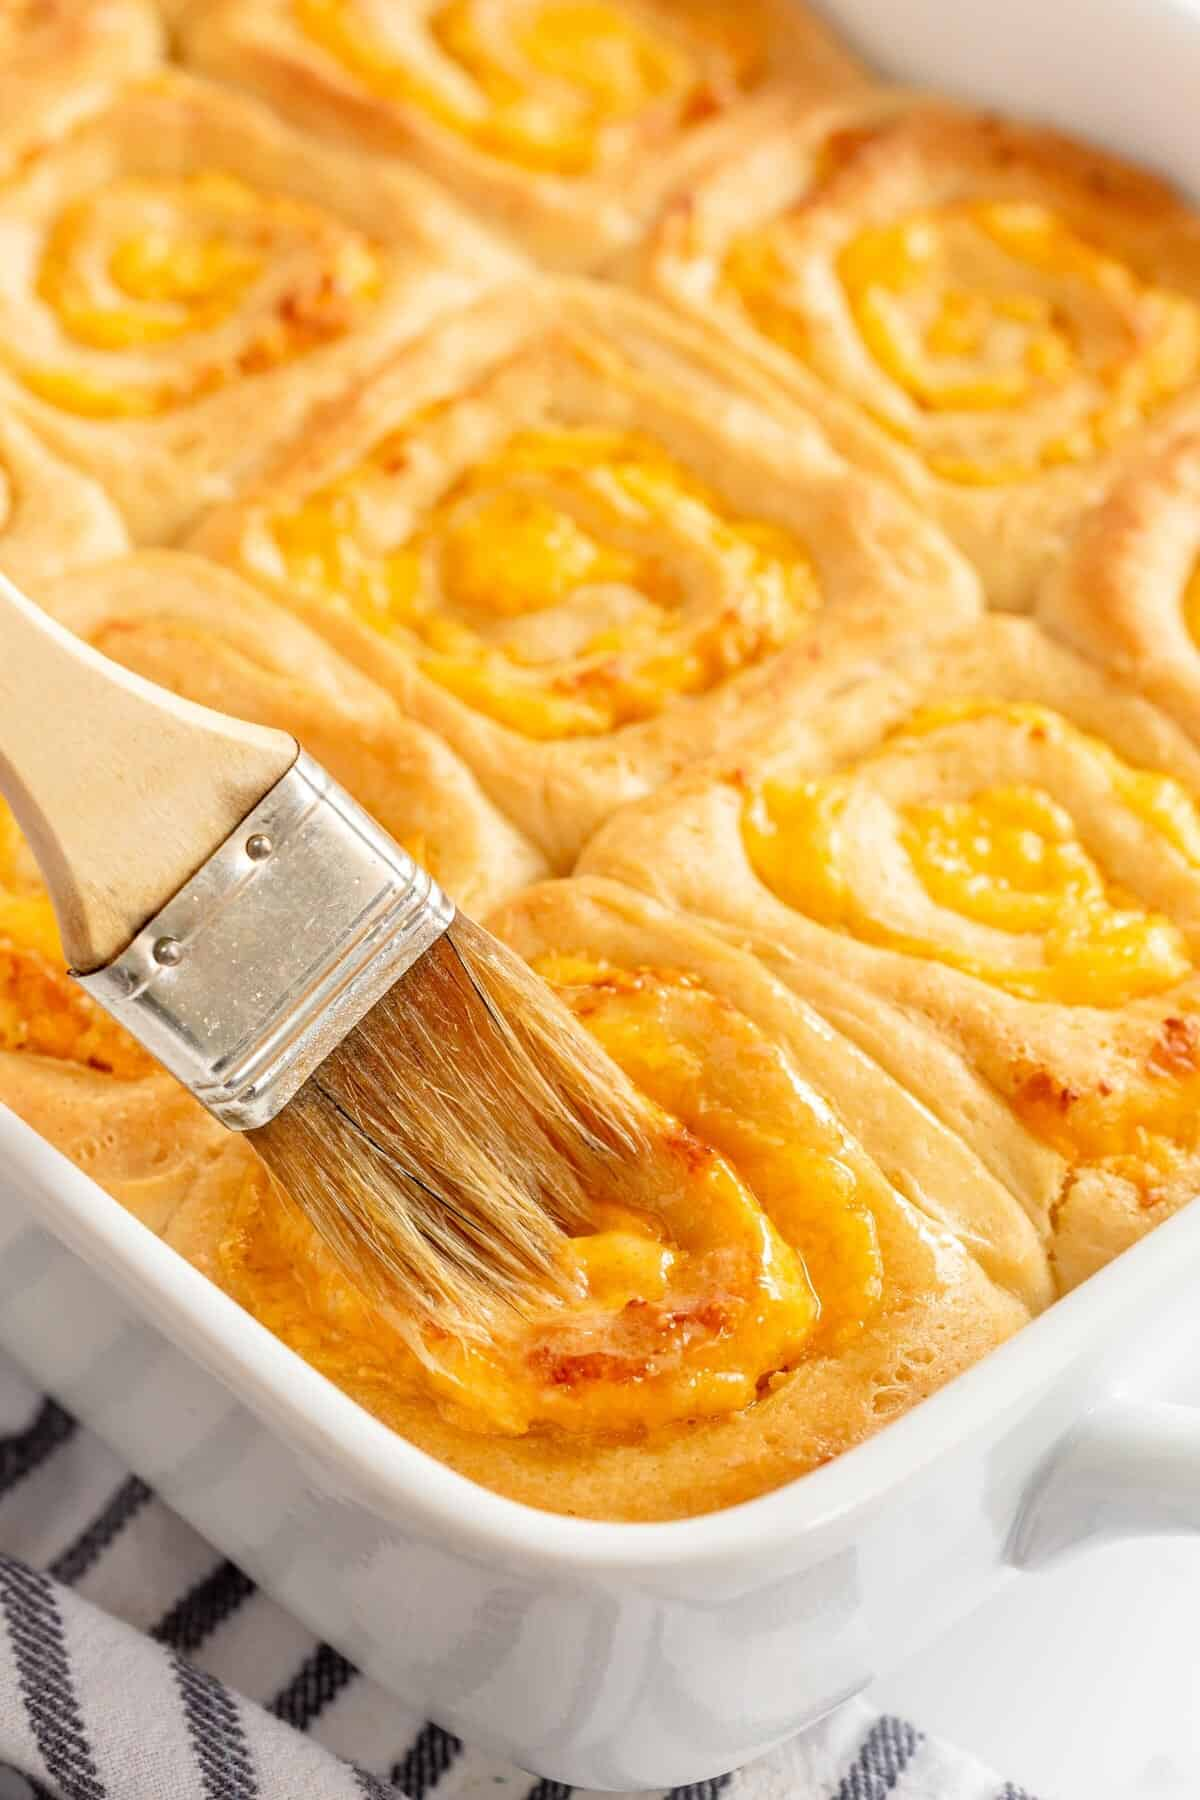 Garlic Cheese Bread with a pastry brush and butter